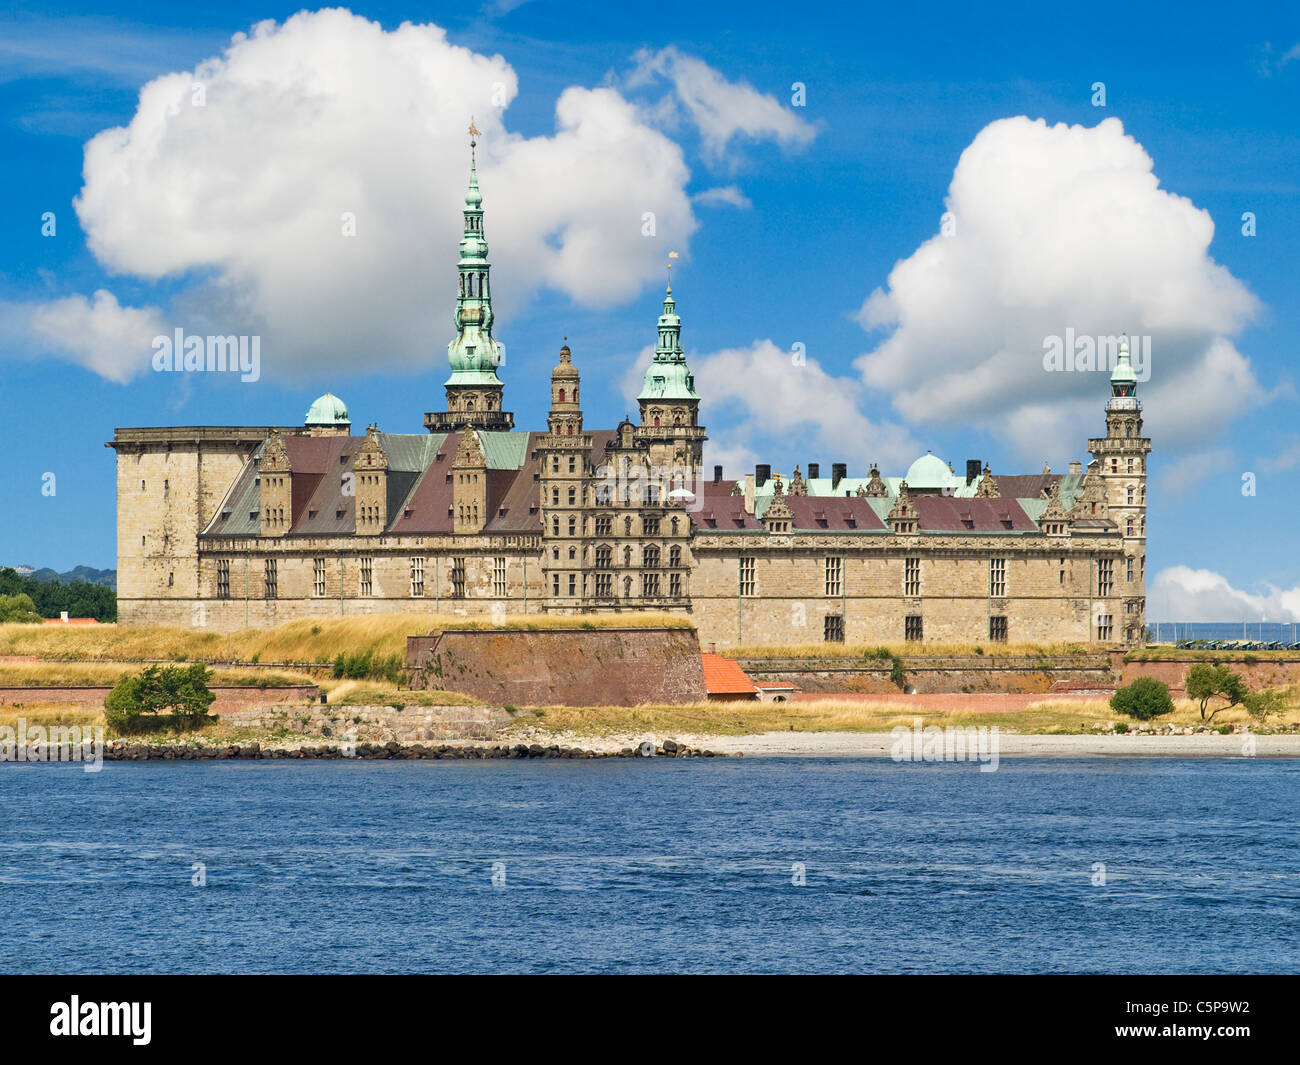 Hamlet Castle Kronborg, Elsinore municipality, Region Hovedstaden, island of Zealand, Denmark, Europe - Stock Image